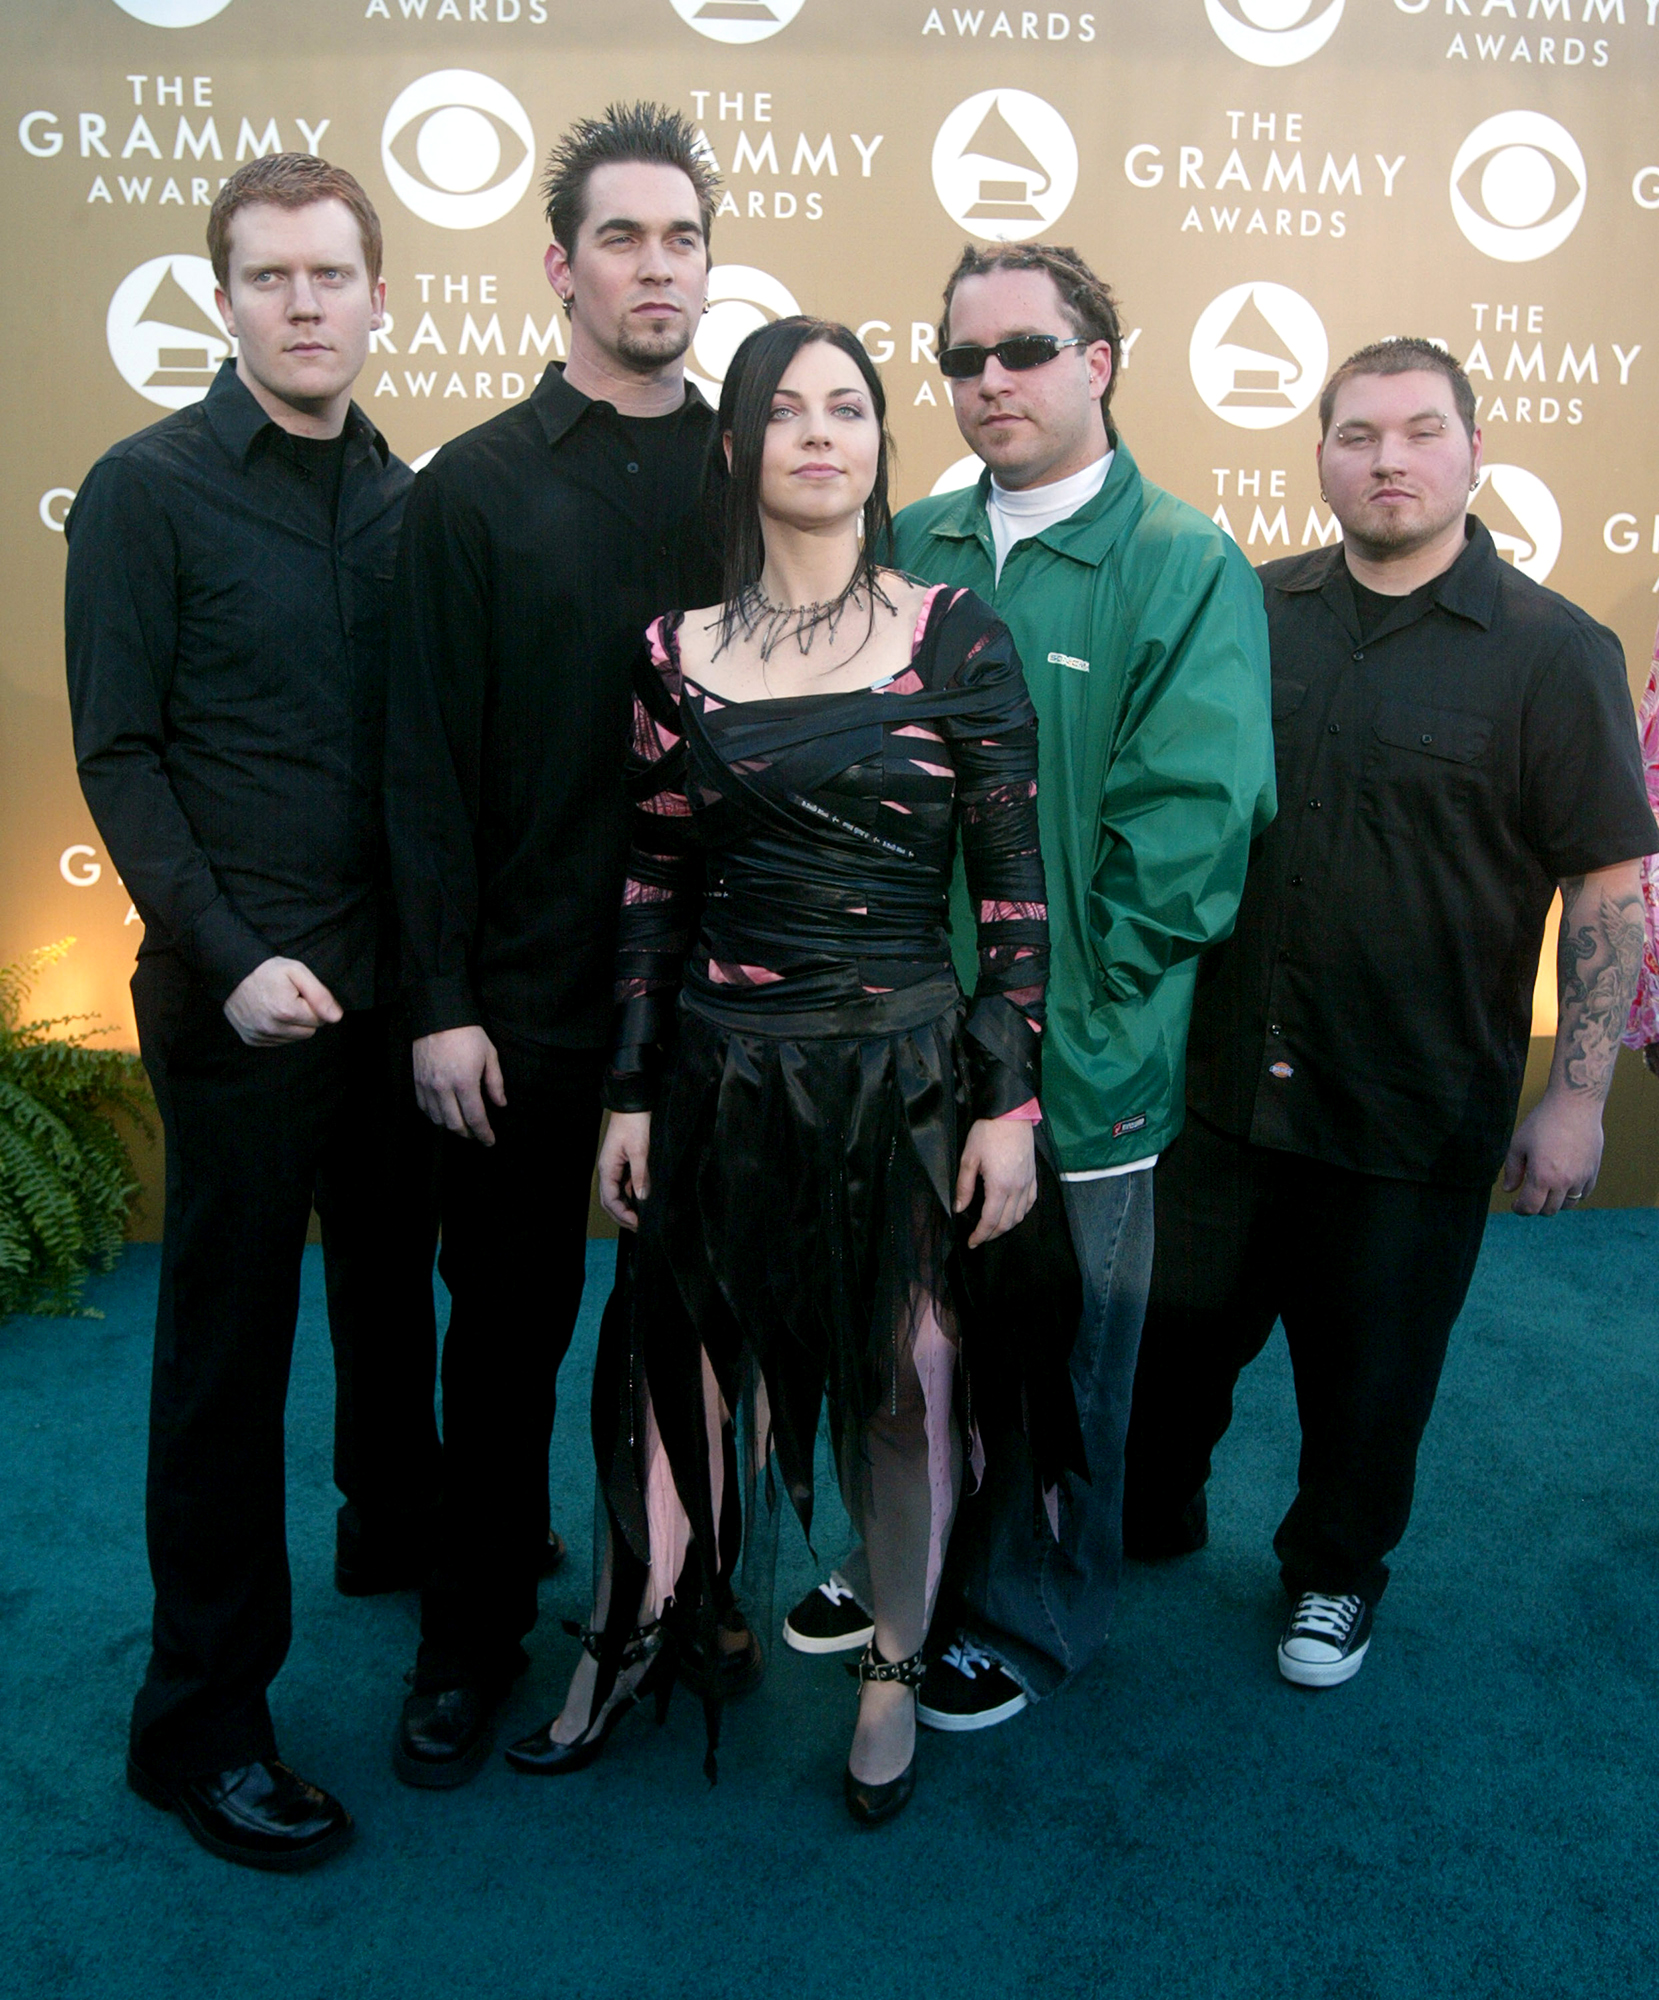 Best New Artist Grammy Winners Where Are They Now - Who They Beat: 50 Cent, Fountains of Wayne, Heather Headley, Sean Paul Where Are They Now: In the years following the 2004 Grammys, bassist Will Boyd, guitarist John LeCompt, drummer Rocky Gray and guitarist Terry Balsamo all left the band, leaving singer and pianist Amy Lee as the only original member still a part of the band in 2019. Evanescence — which now includes Tim McCord, Will Hunt, Jen Majura and Troy McLawhorn — are set to hit the road together in May 2019.